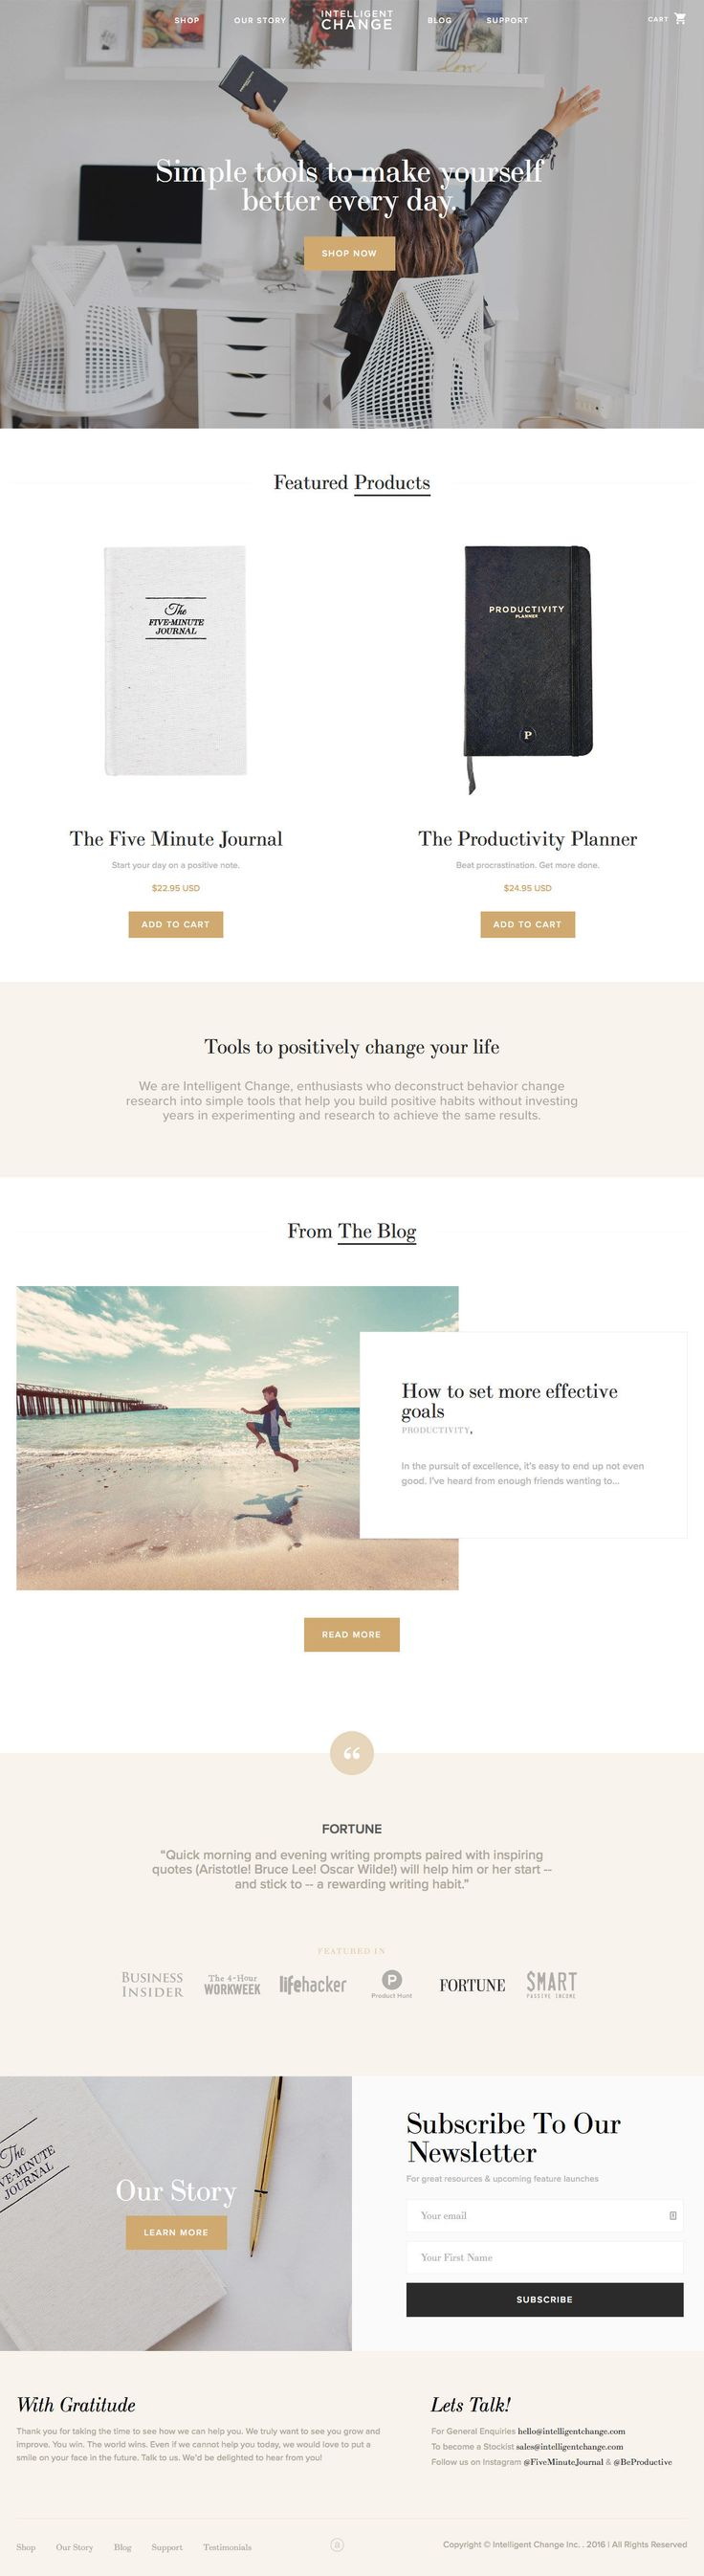 Intelligent Change (More web design inspiration at topdesigninspiration.com)…